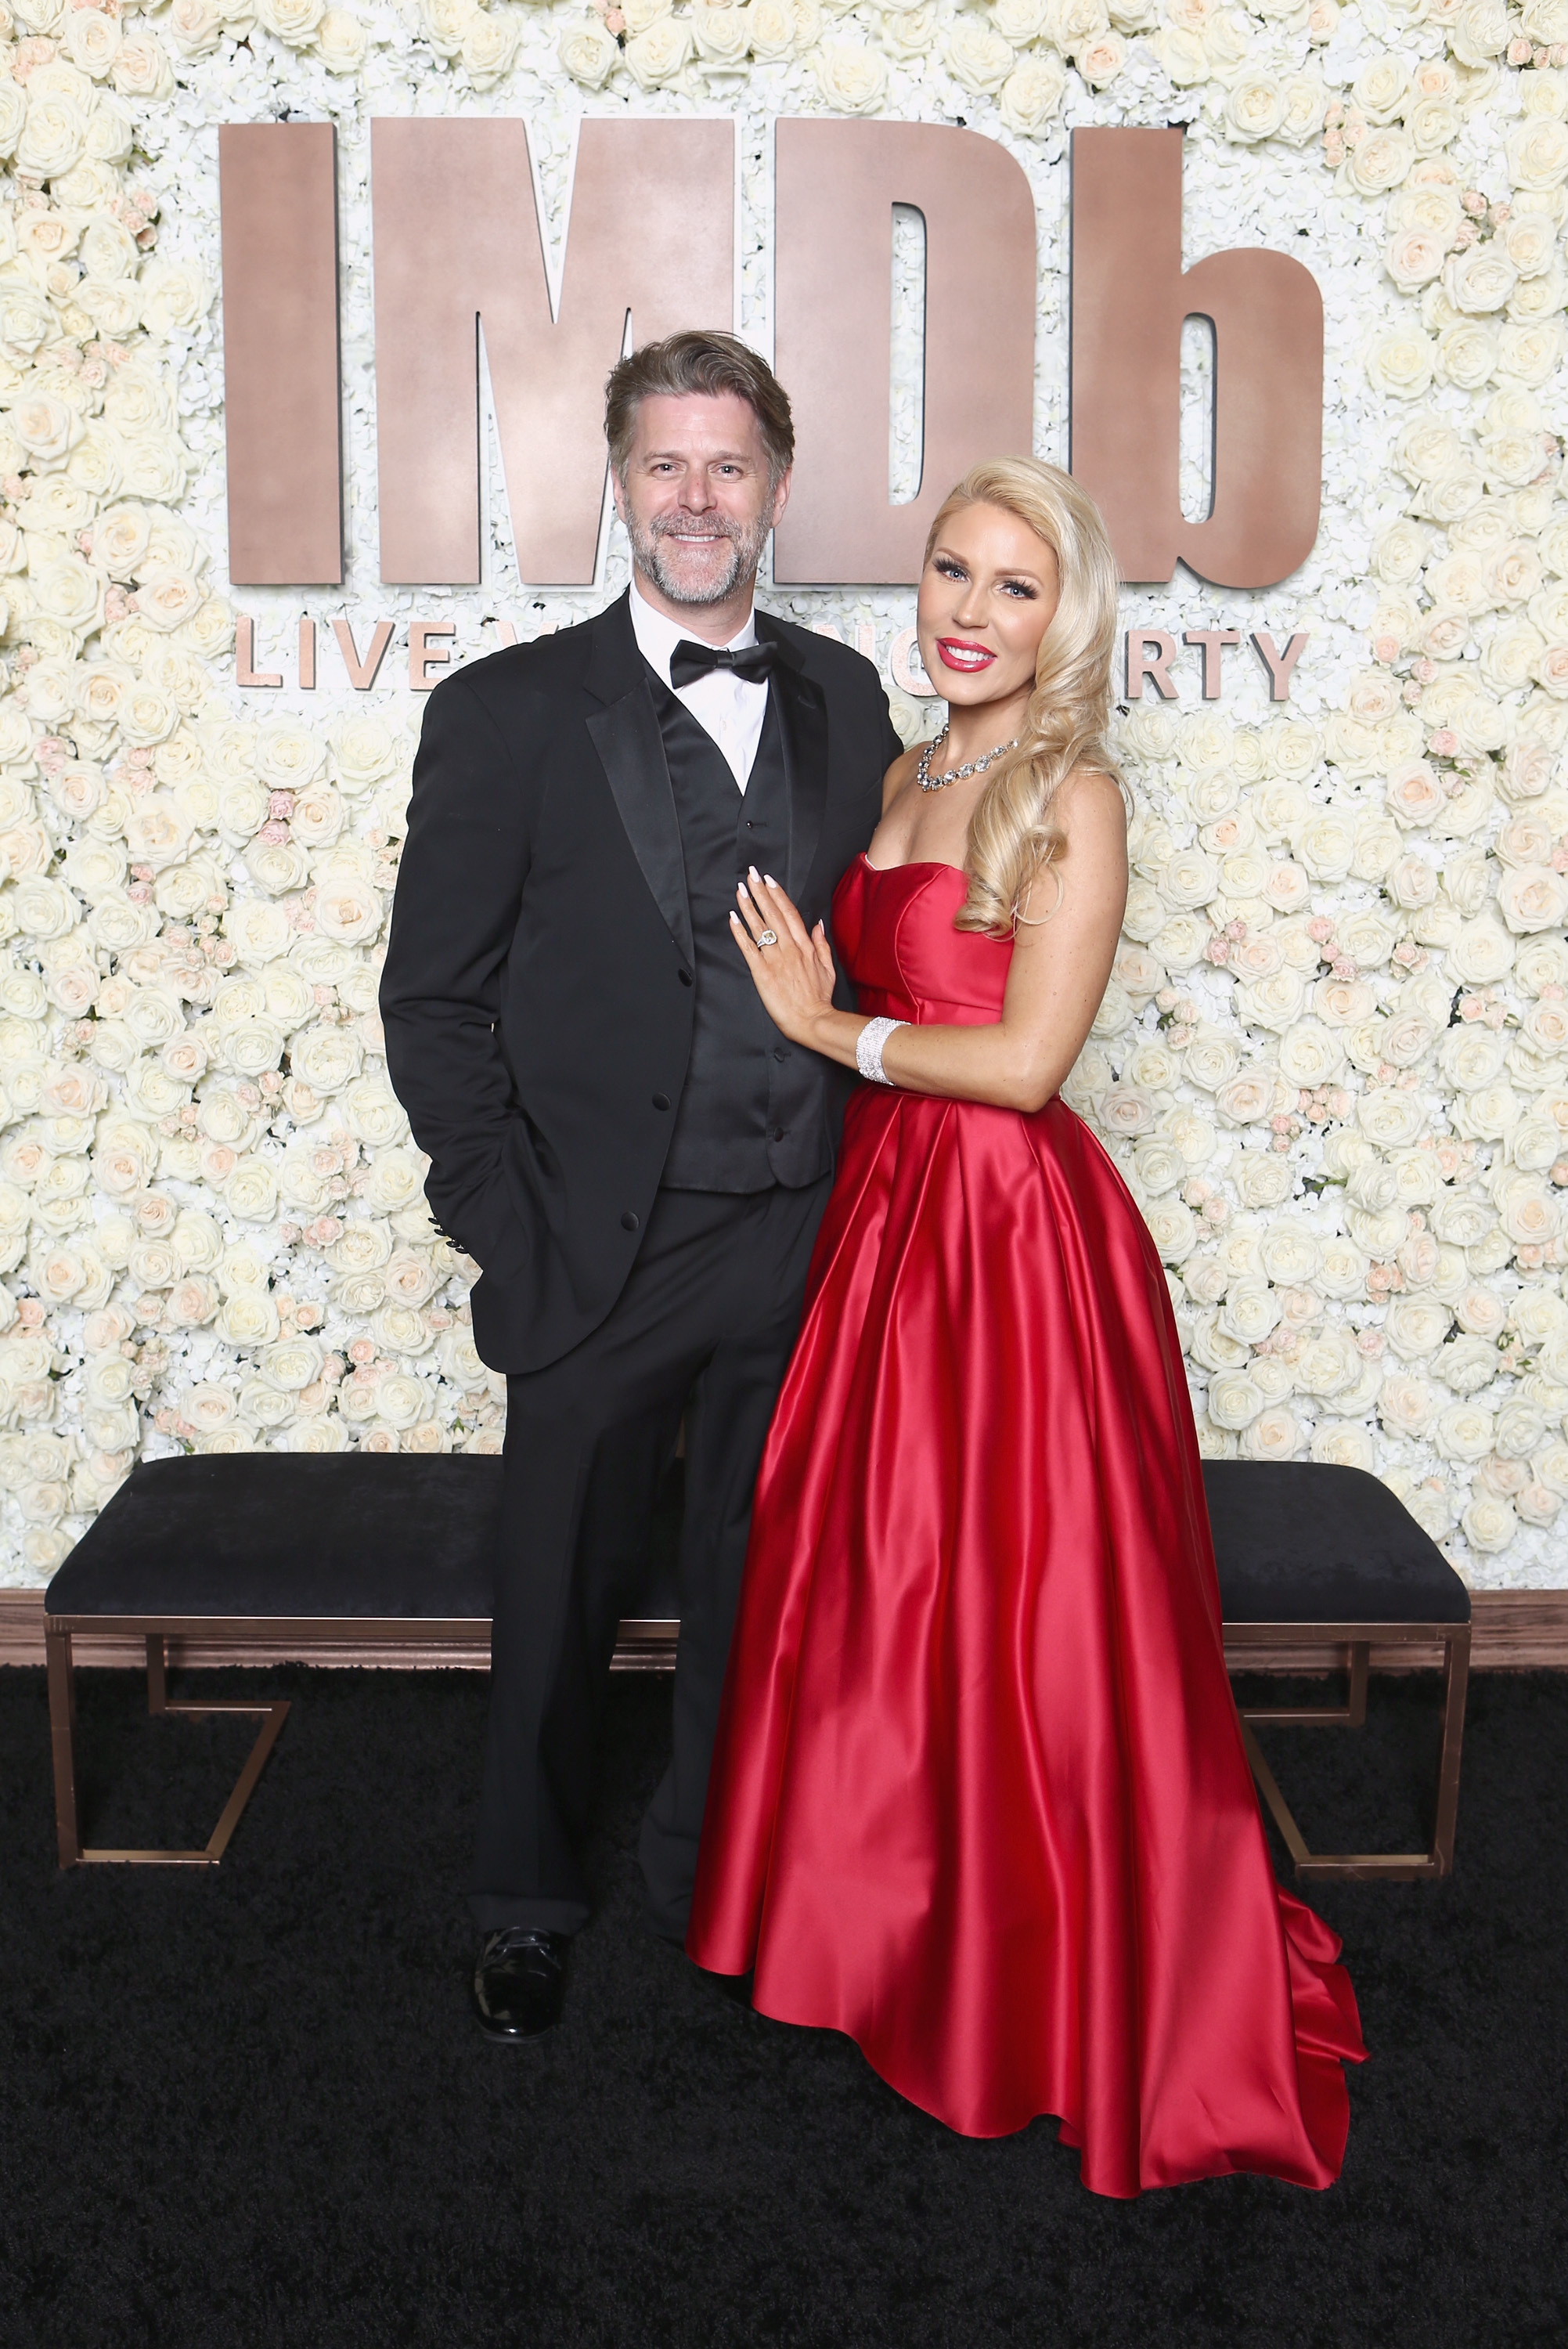 Slade Smiley and Gretchen Rossi attend the IMDb LIVE Academy Awards Viewing Party at Neuehouse in Hollywood on March 4, 2018.